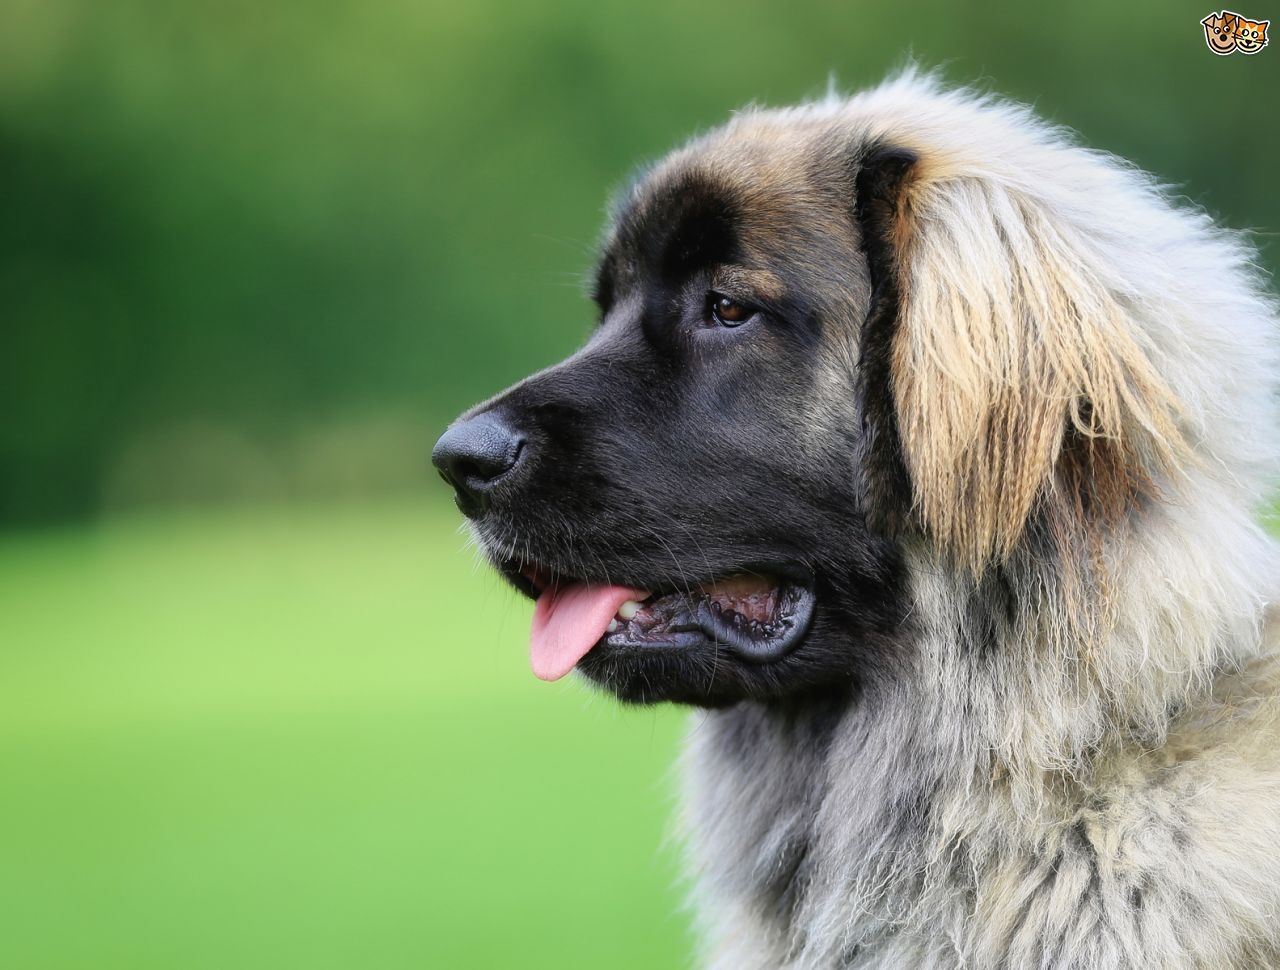 Leonberger Dog: Leonberger Leonberger Dog Health And Longevity Breed